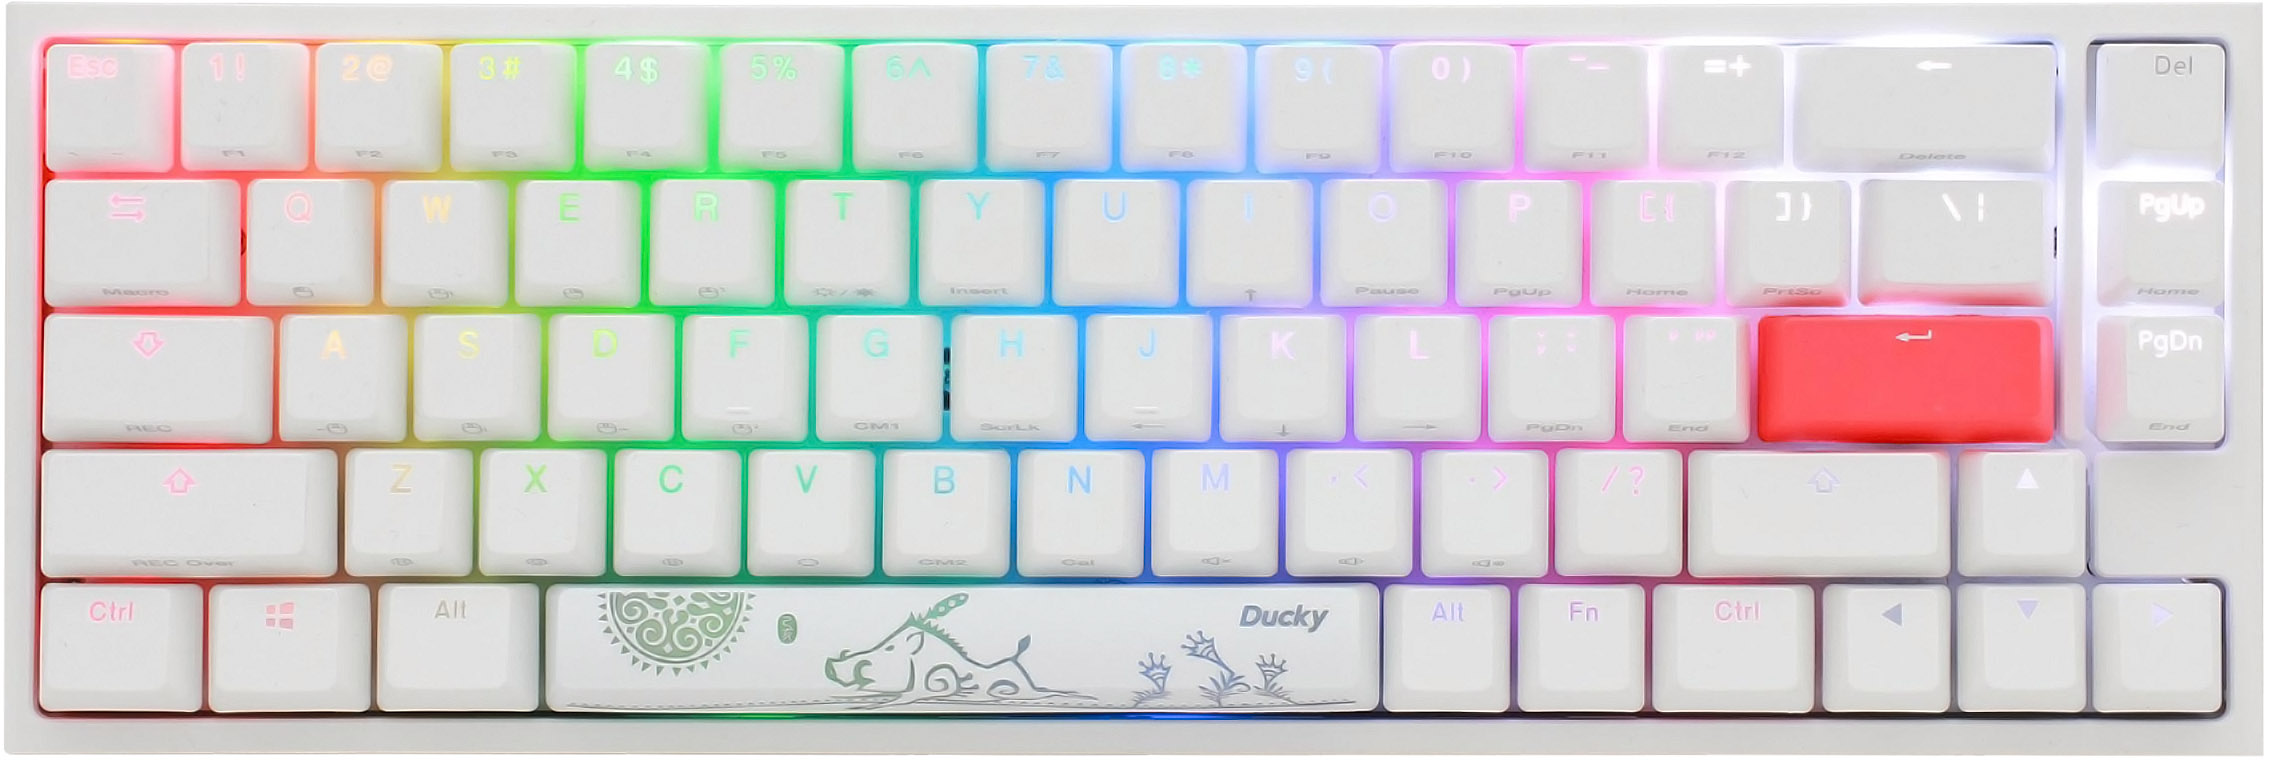 Ducky One 2 Sf Rgb Pure White Rgb Led 65 Double Shot Pbt Mechanical Keyboard With Cherry Mx Black Brown Blue Red Silver Silent Red Or Silent Blackkailh Box Whitekailh Box Pink Switches